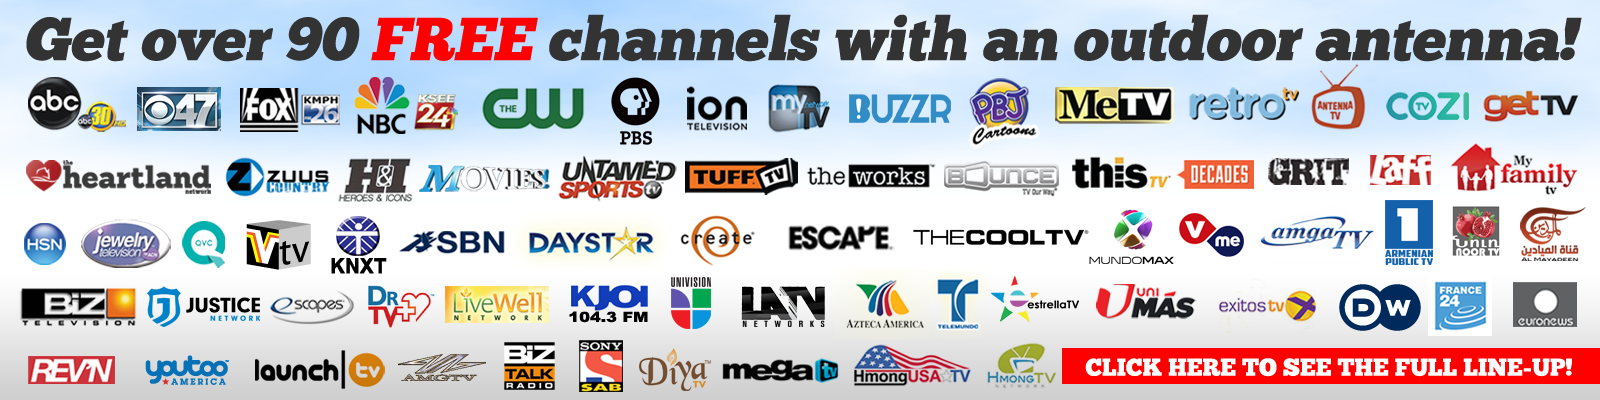 Get Over 80 FREE Channels With an Outdoor Antenna!